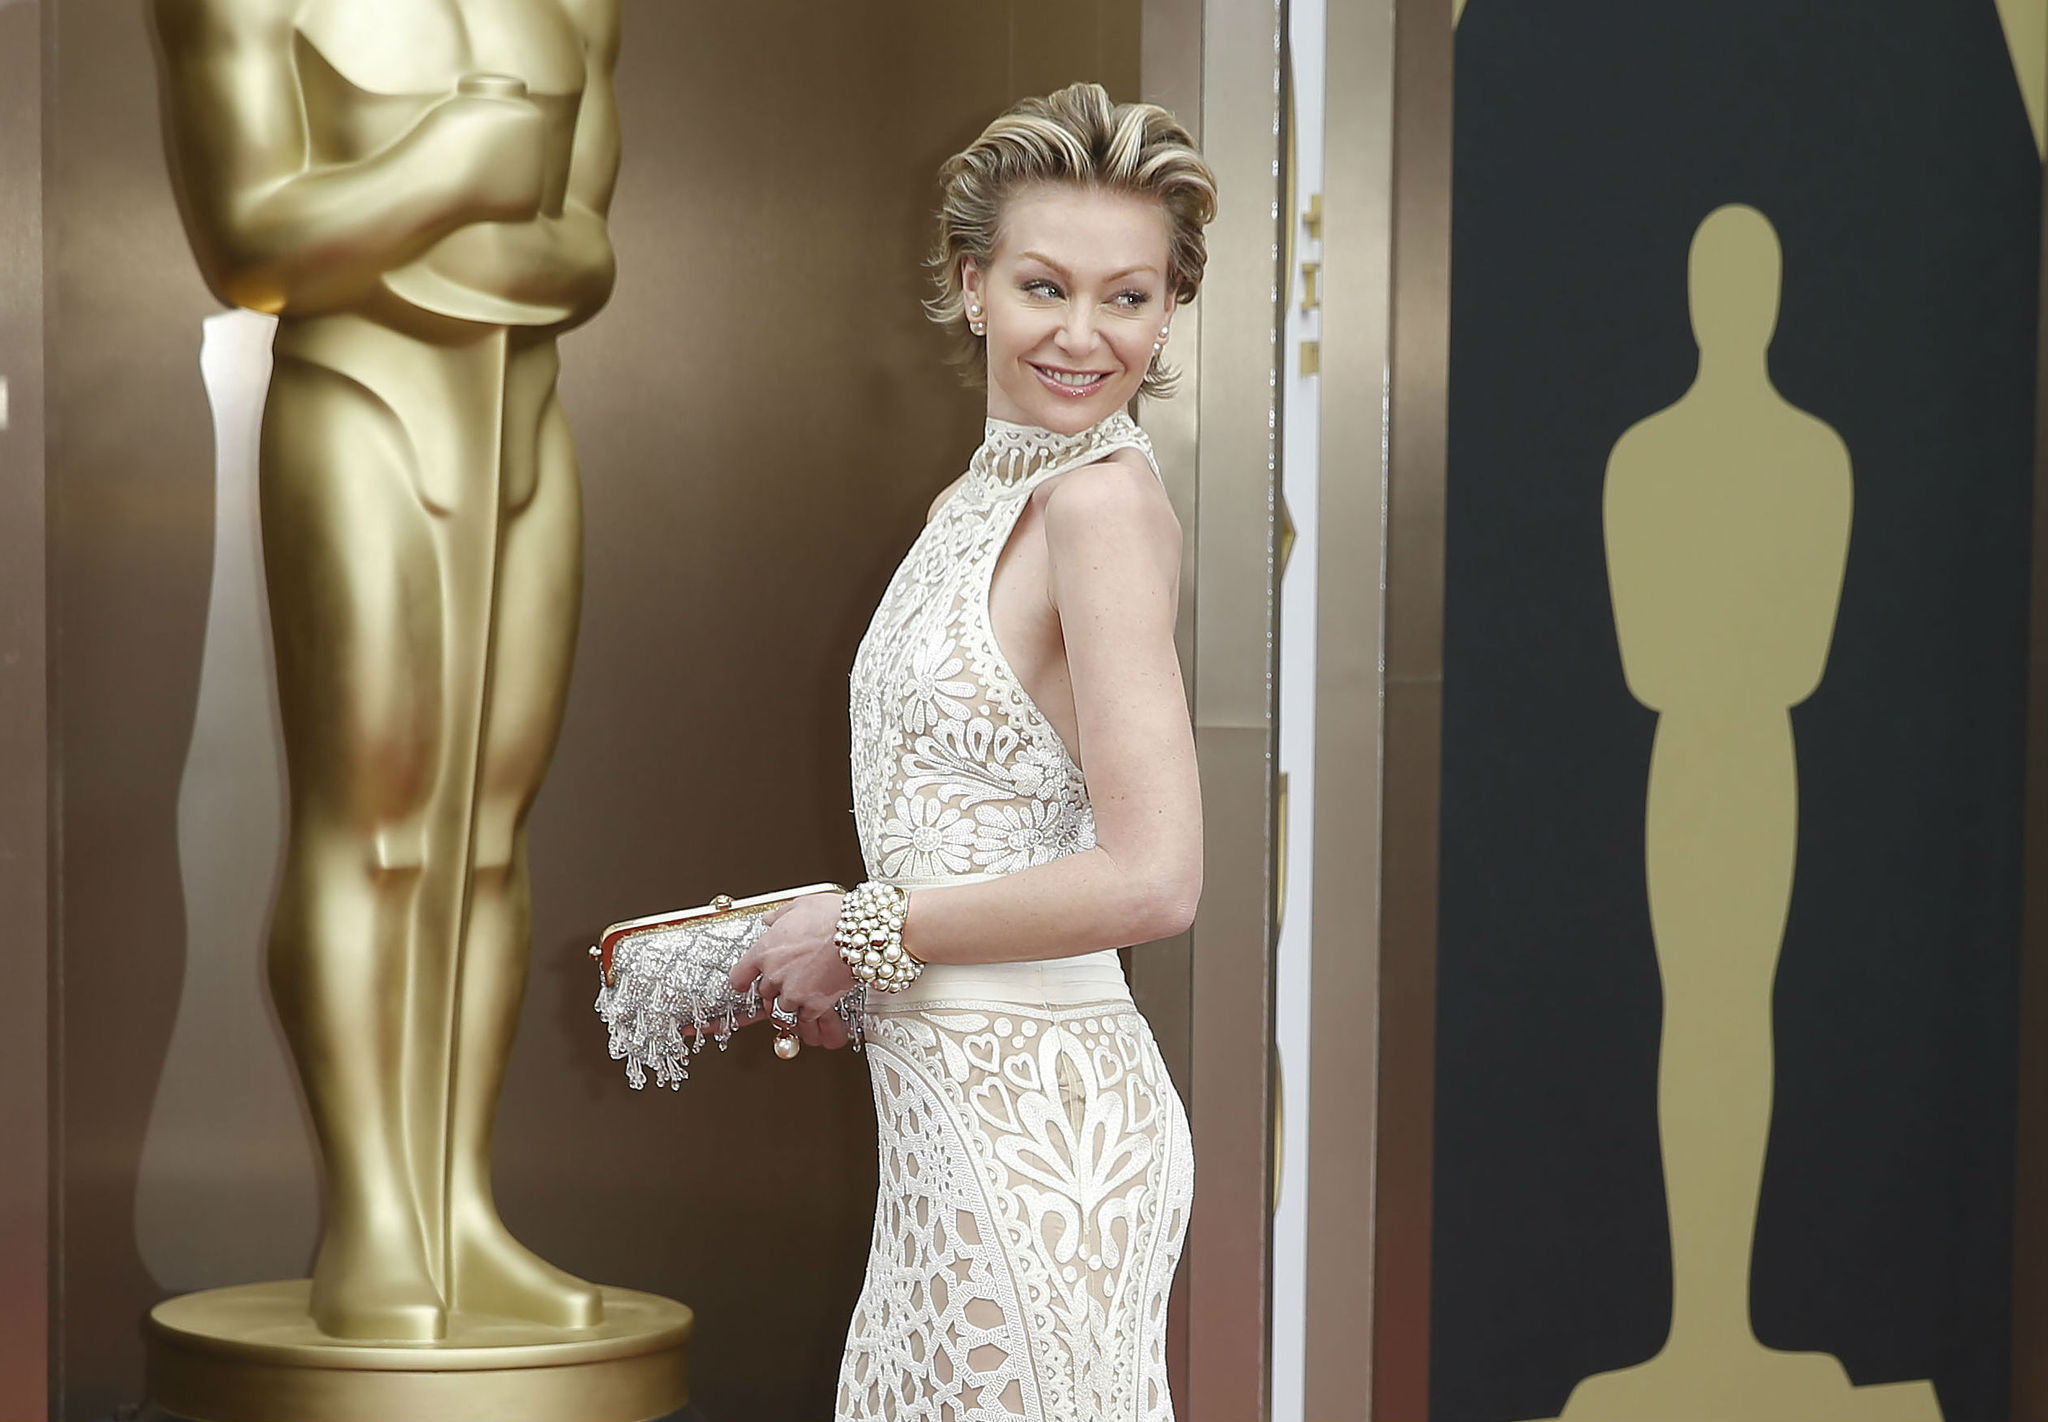 Portia de Rossi joins 'Scandal'; Ellen DeGeneres breaks news on Twitter